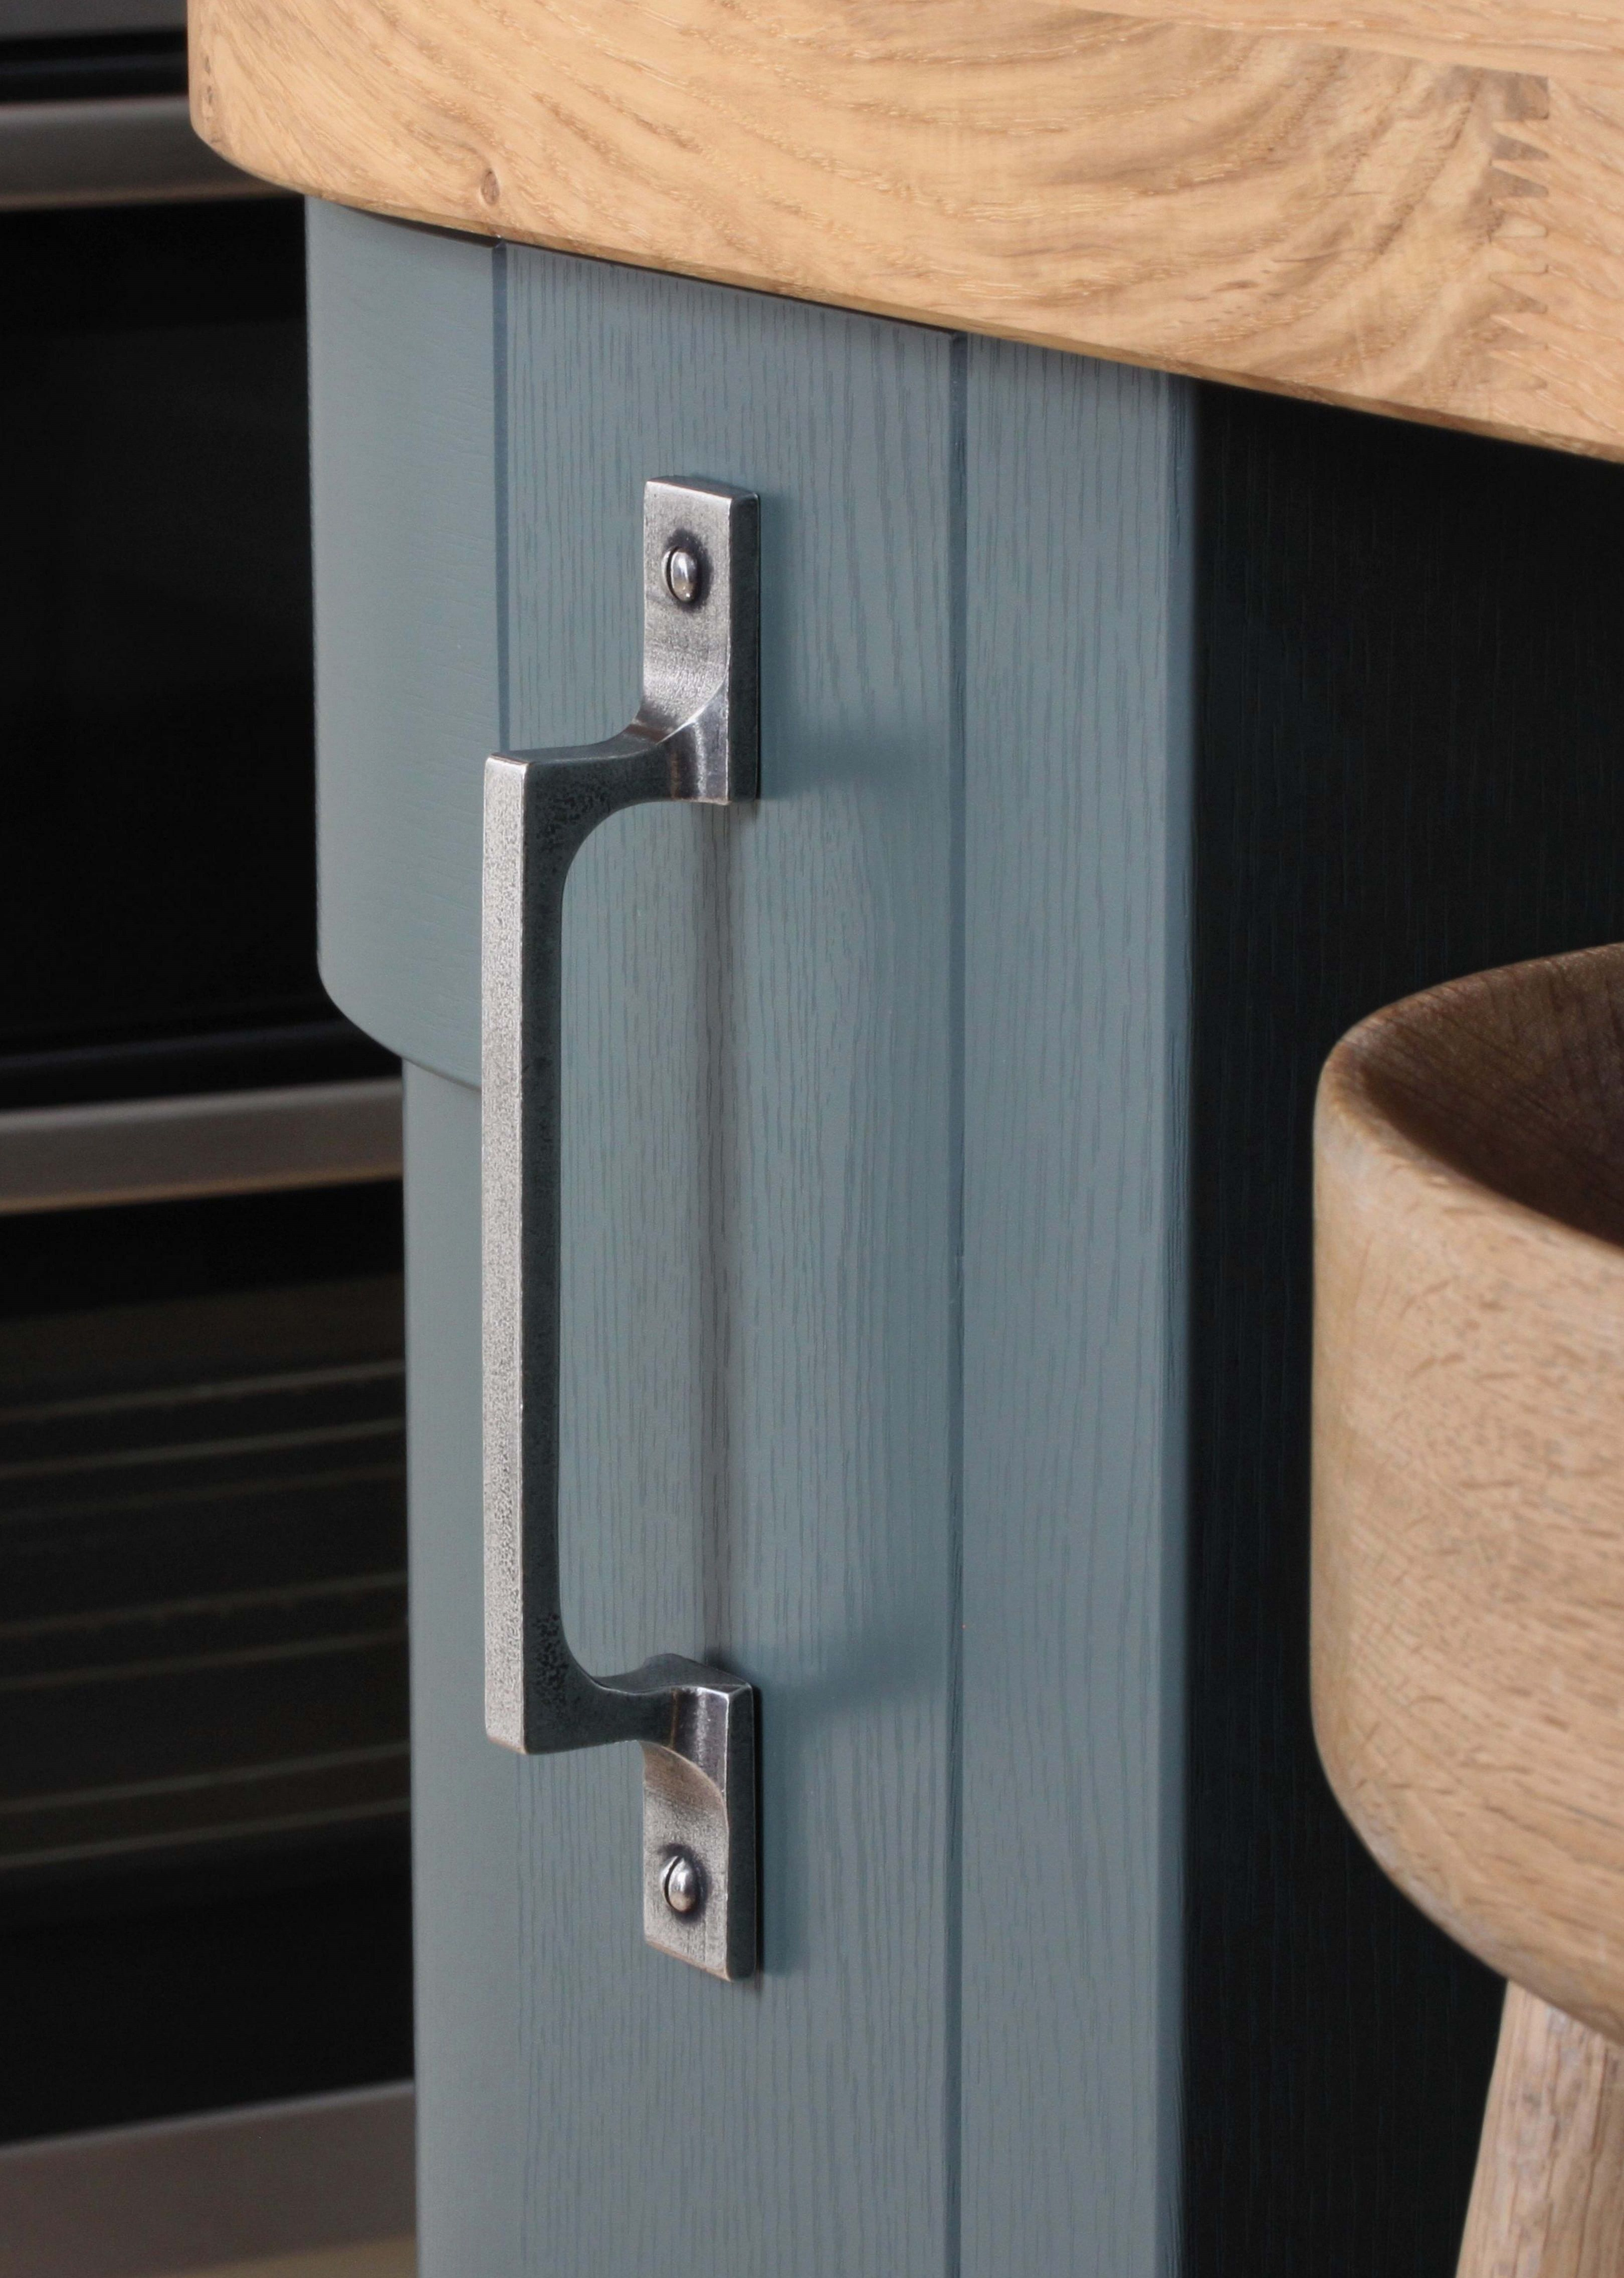 Fine English Pewter is the newest line in our Manzoni cabinet